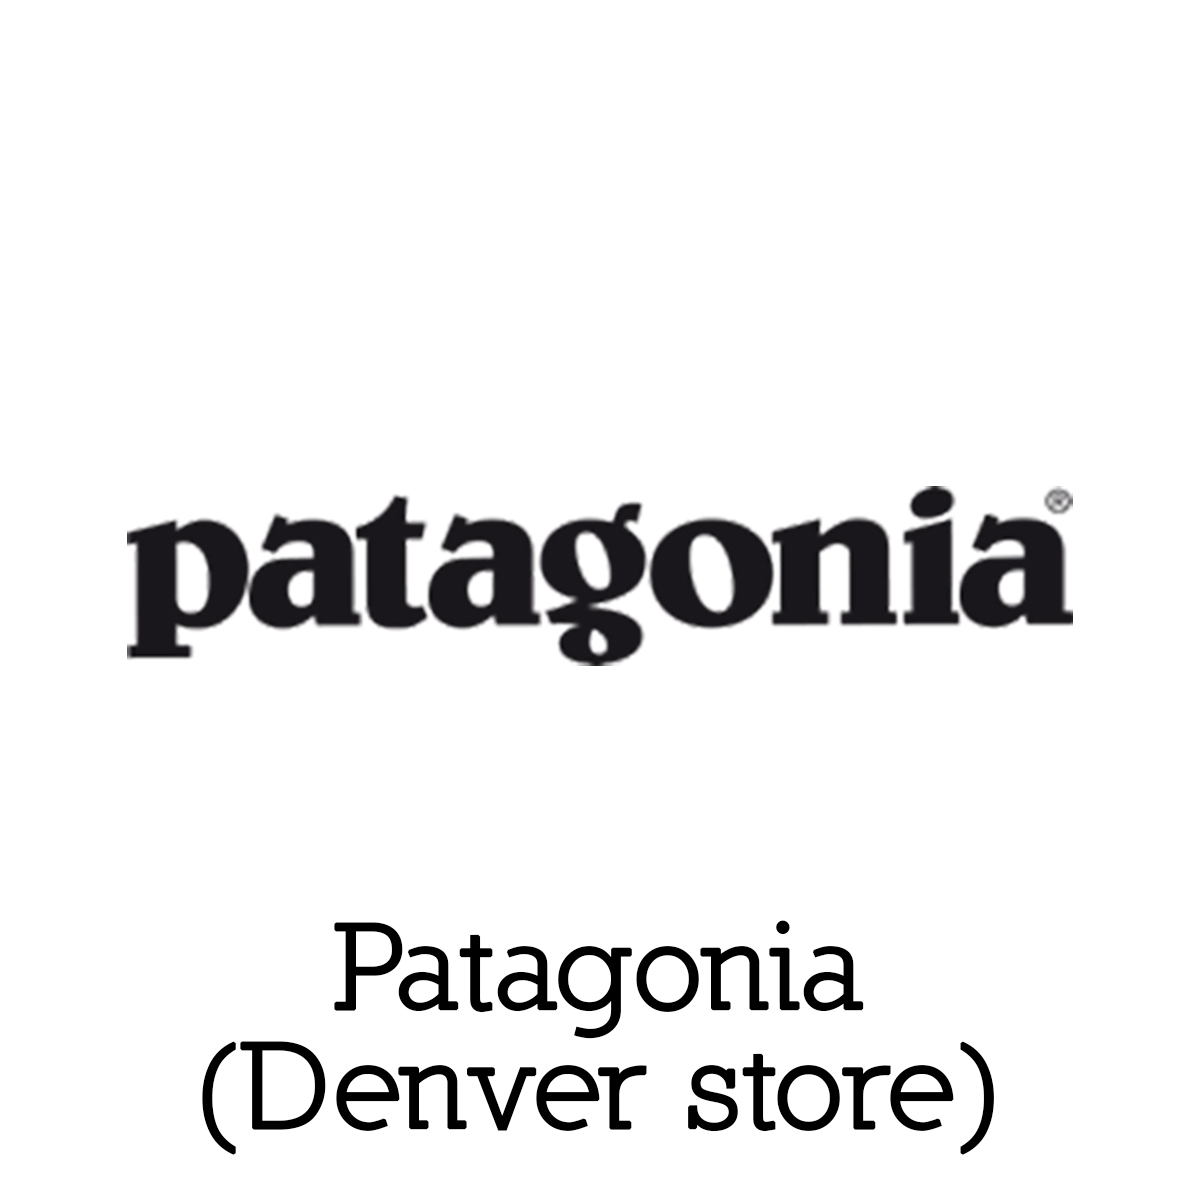 patagonia_resized-for-web.jpg